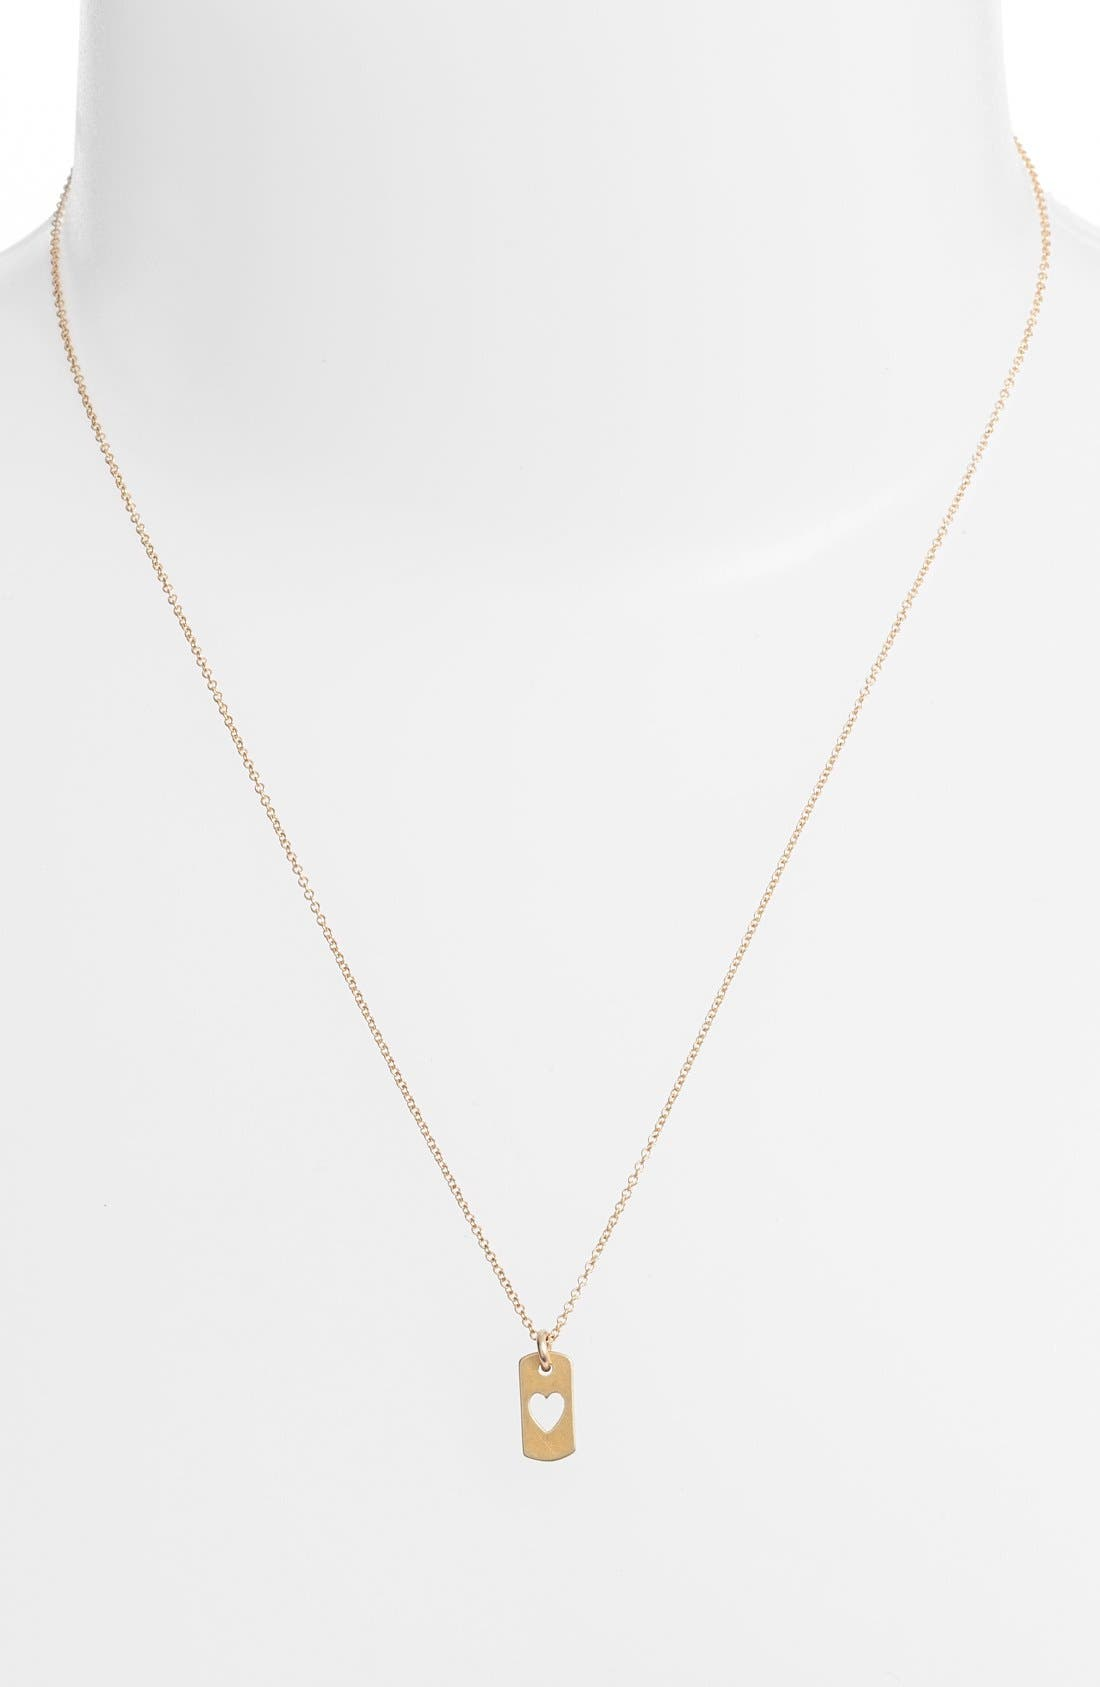 Alternate Image 3  - Dogeared Heart Dog Tag Pendant Necklace (Nordstrom Exclusive)